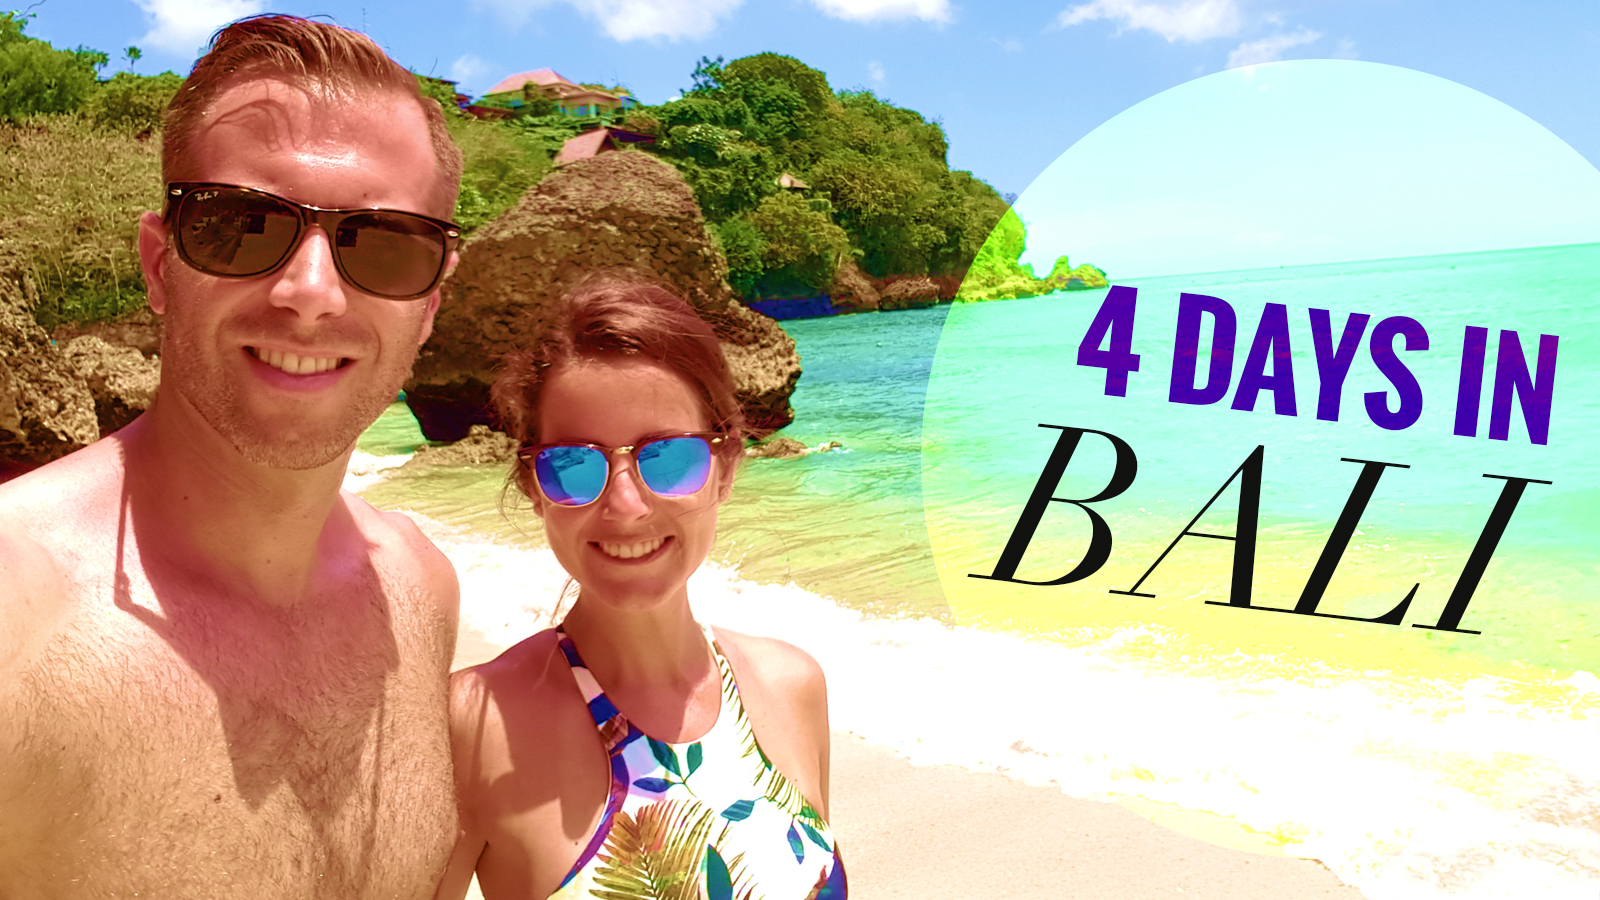 September Trip to Bali & Vacation Itinerary